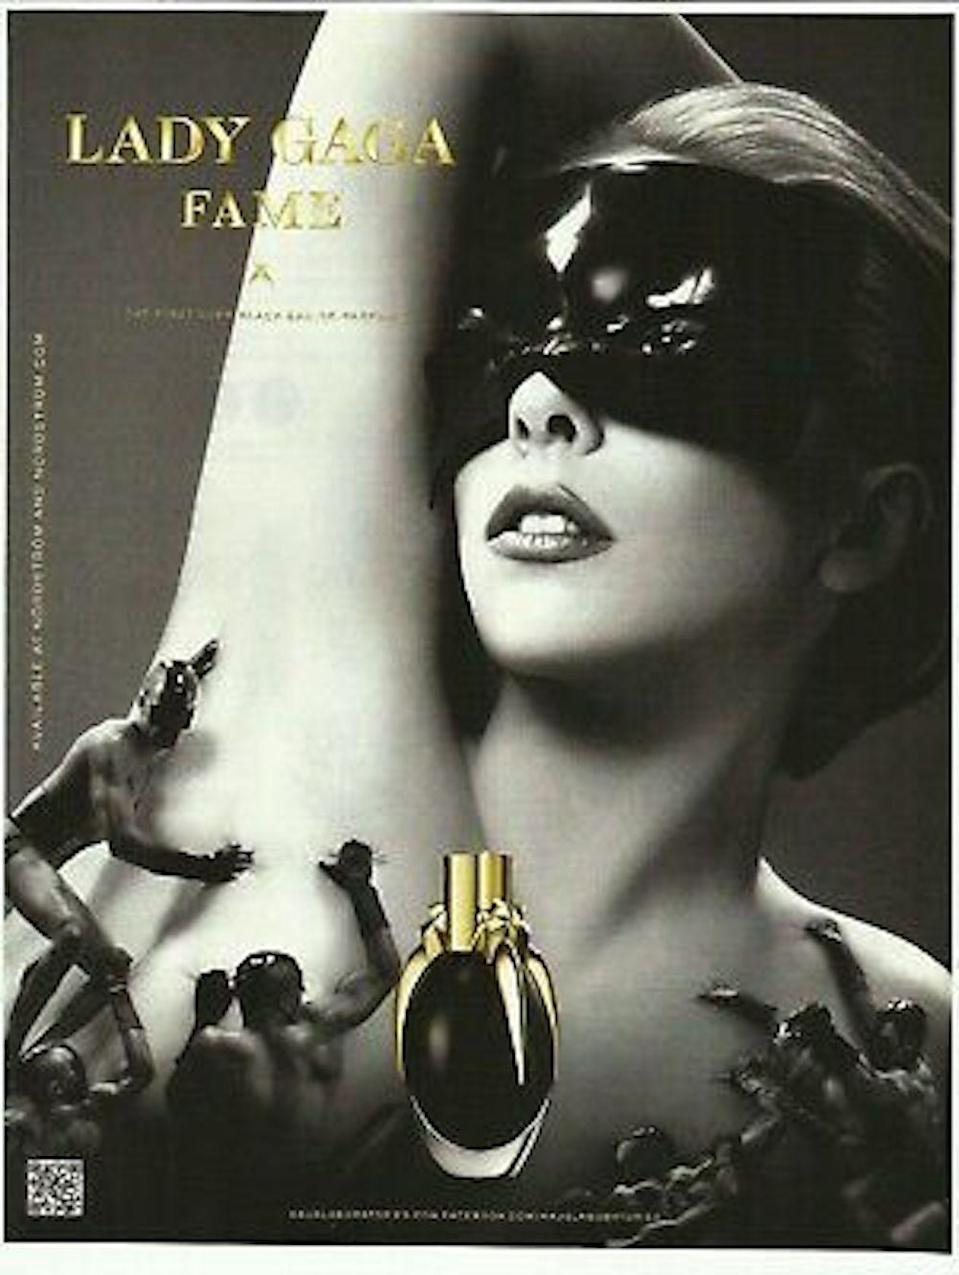 <p>Rare image of me clamoring on top of people at the mall to get my hands on this perfume. </p>